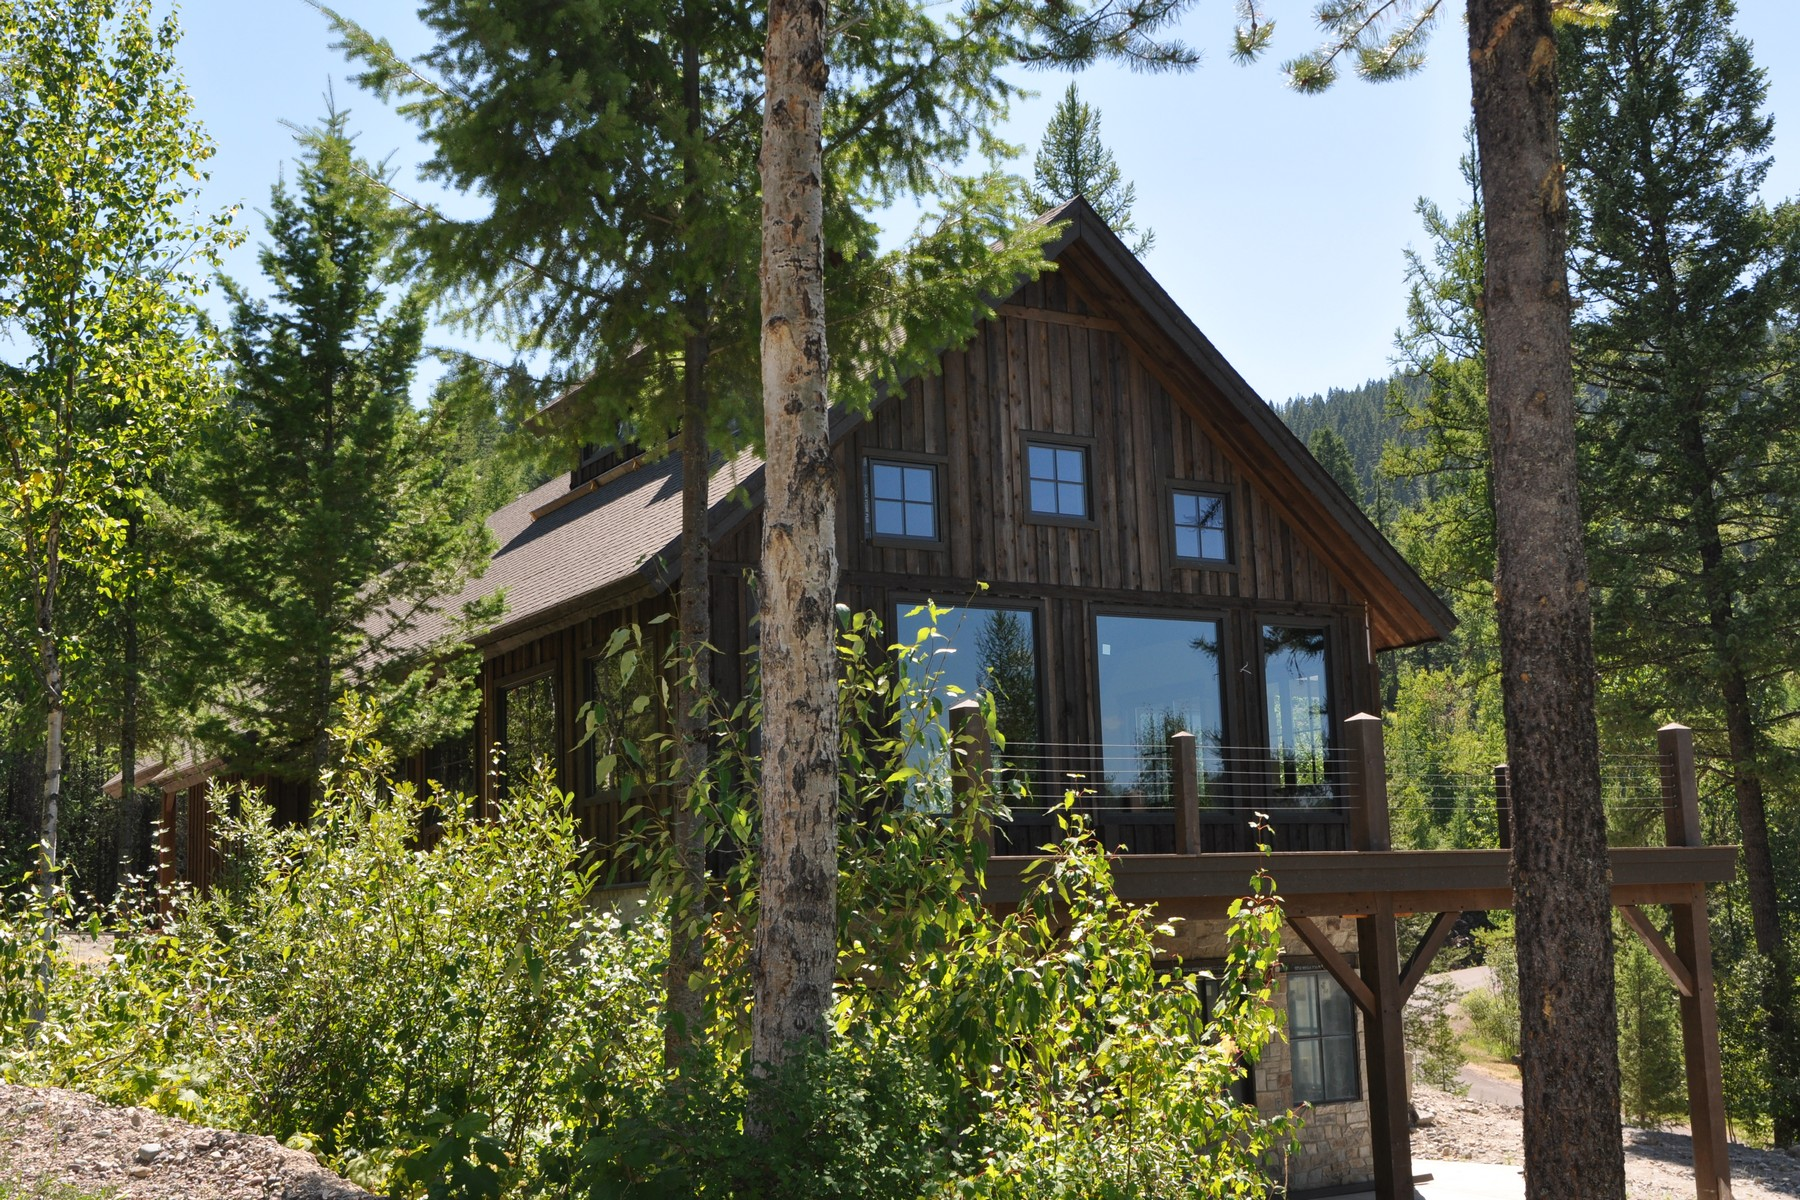 Additional photo for property listing at 1712 Lion Mountain Dr , Whitefish, MT 59937 1712  Lion Mountain Dr Whitefish, Montana 59937 United States